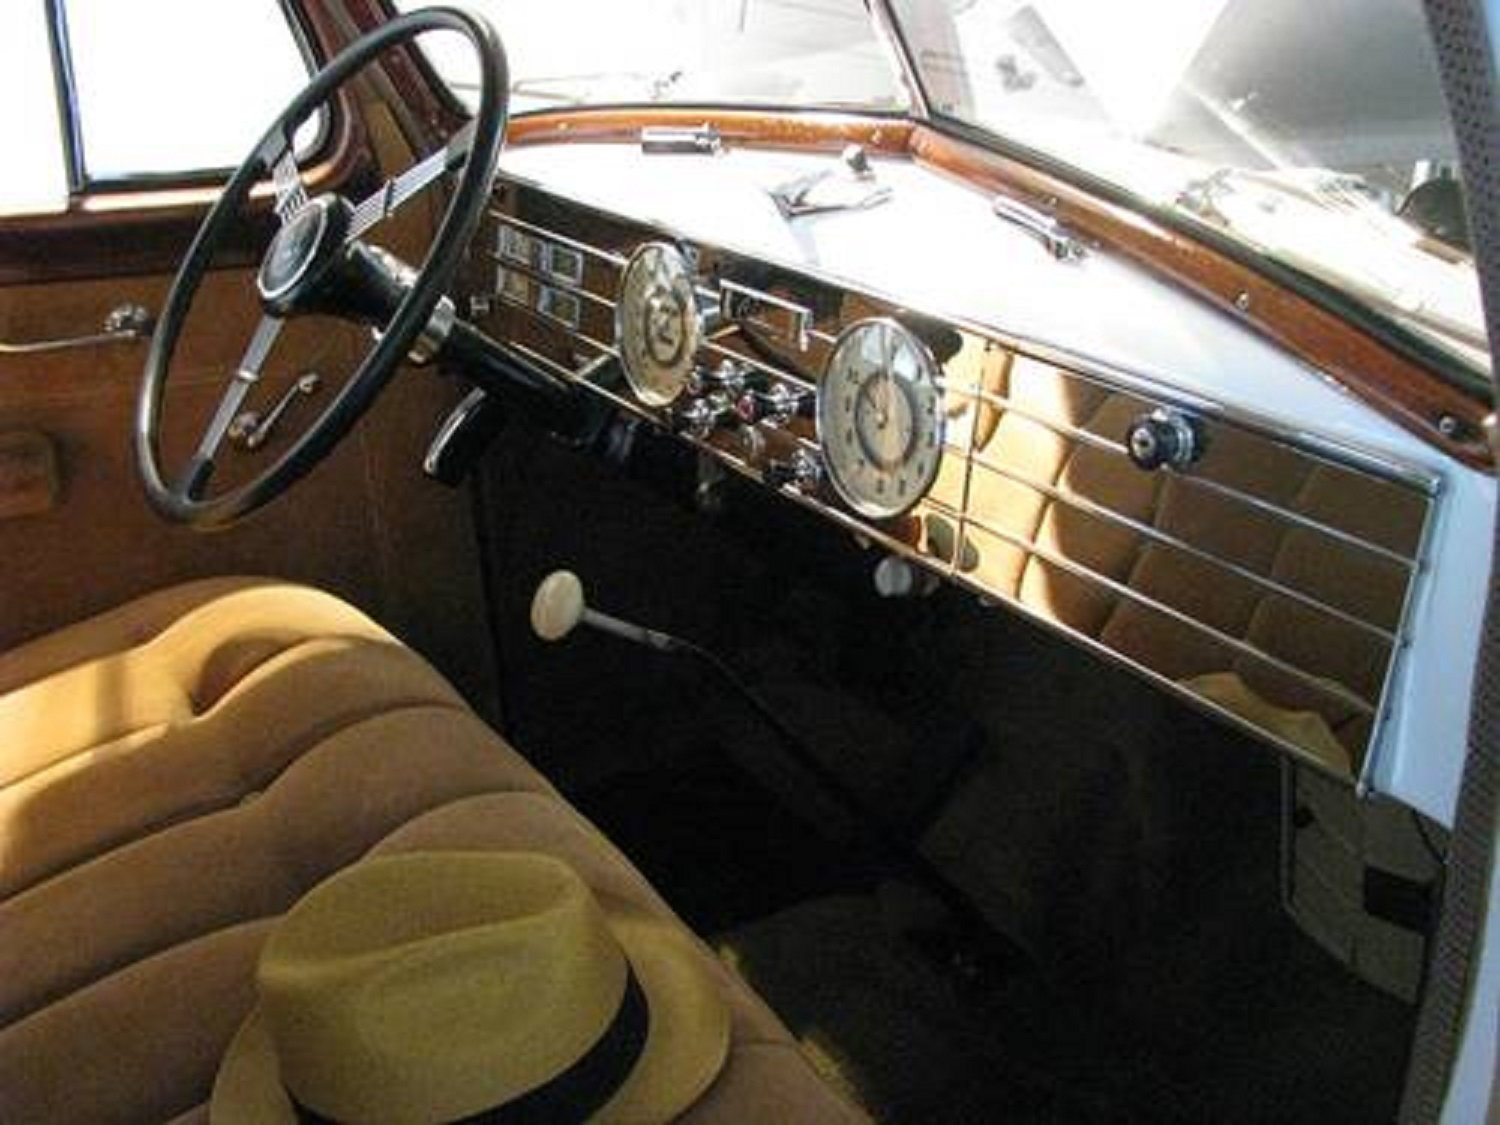 1937 Cadillac 85 Touring Sedan For Sale (picture 5 of 6)